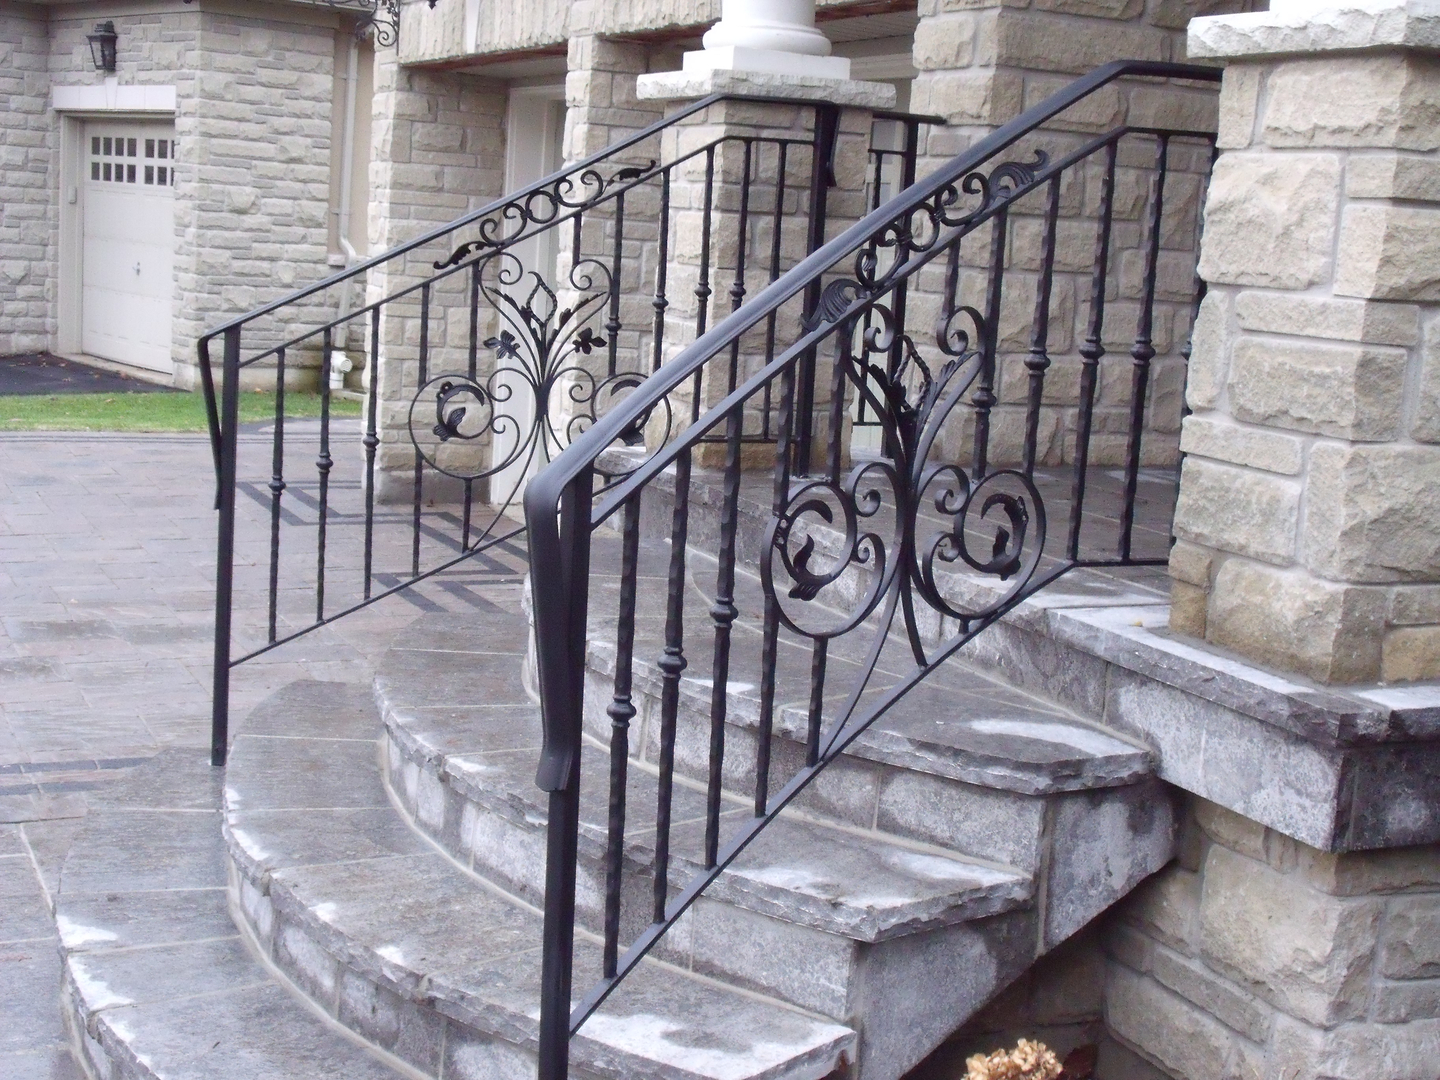 Exterior iron Railings - Railings Toronto - Iron Railings in Toronto